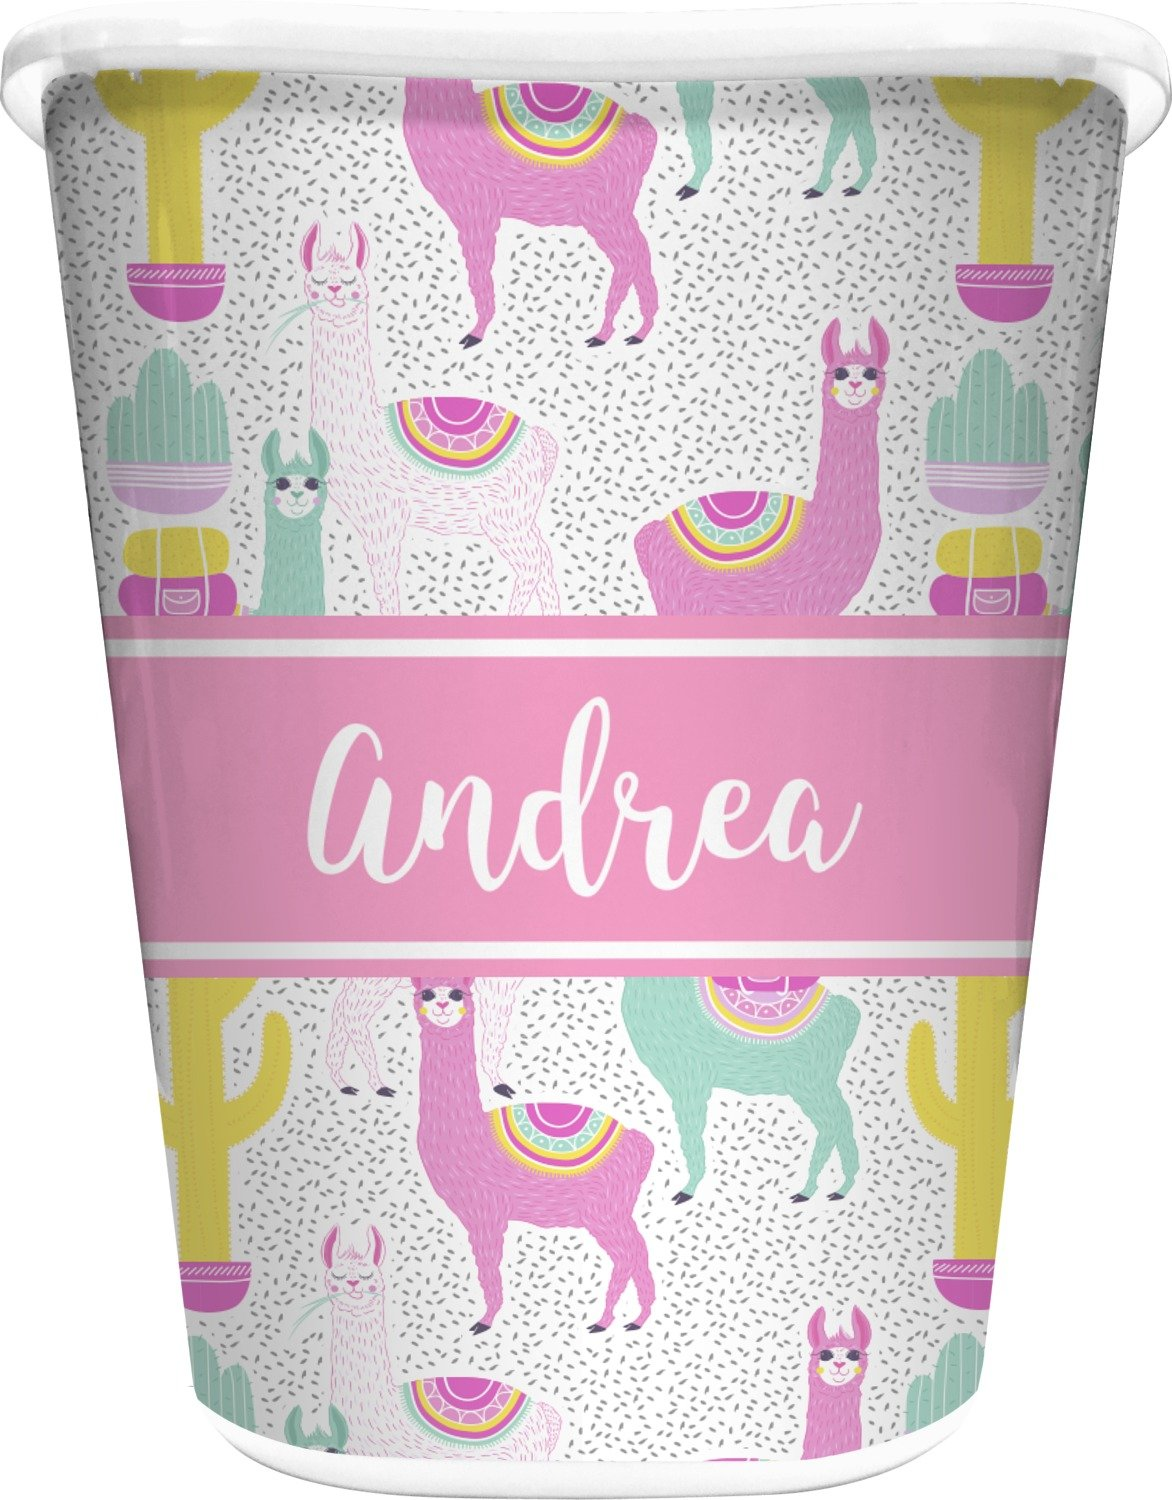 RNK Shops Llamas Waste Basket - Single Sided (White) (Personalized)